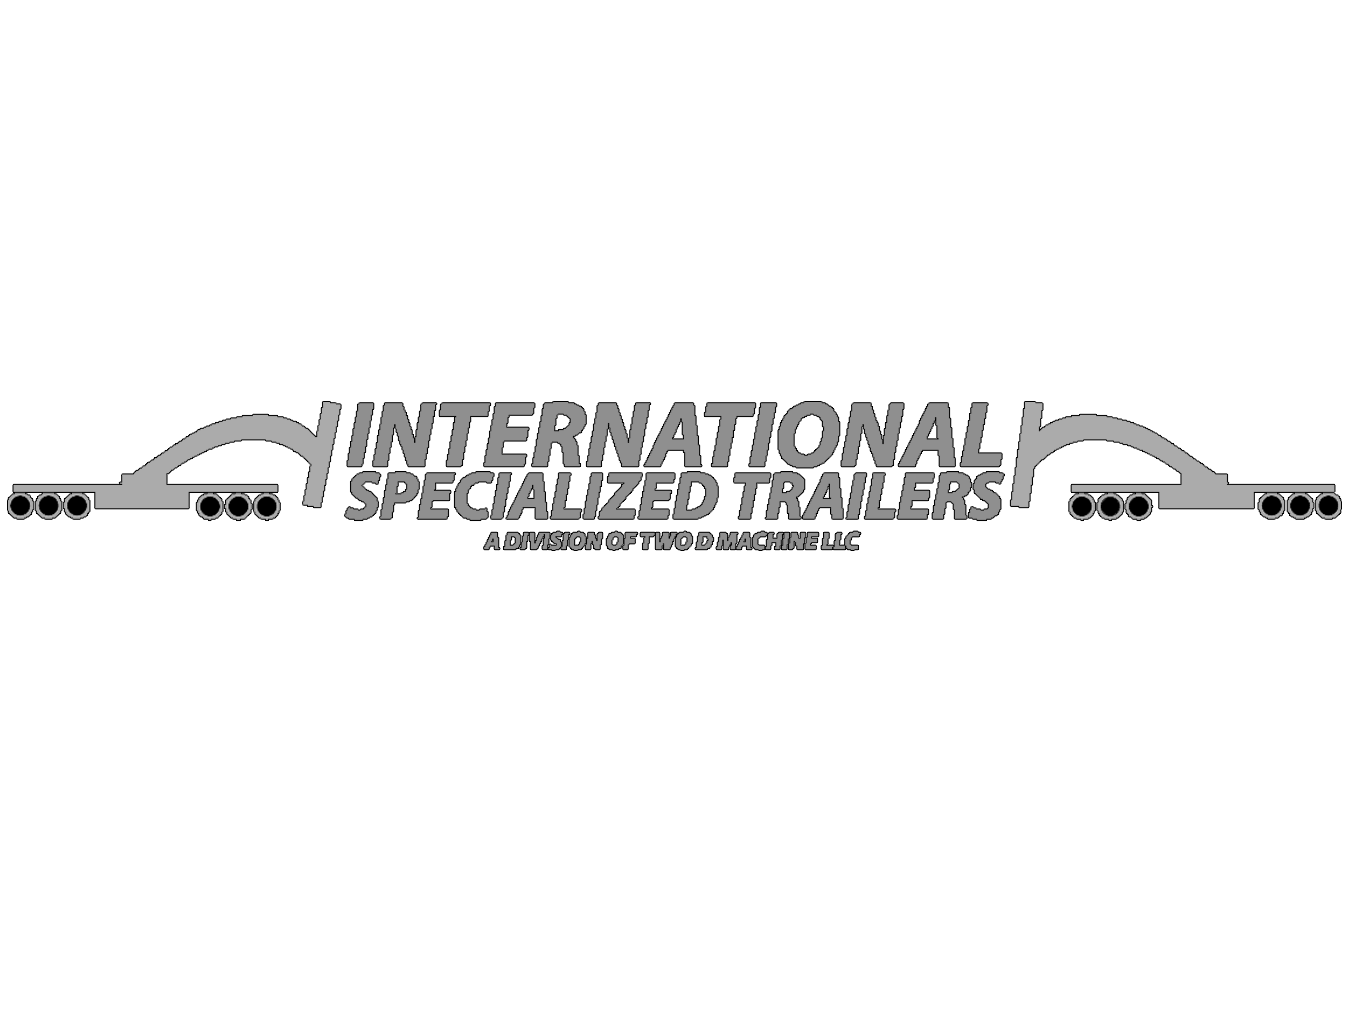 International Specialized Trailers